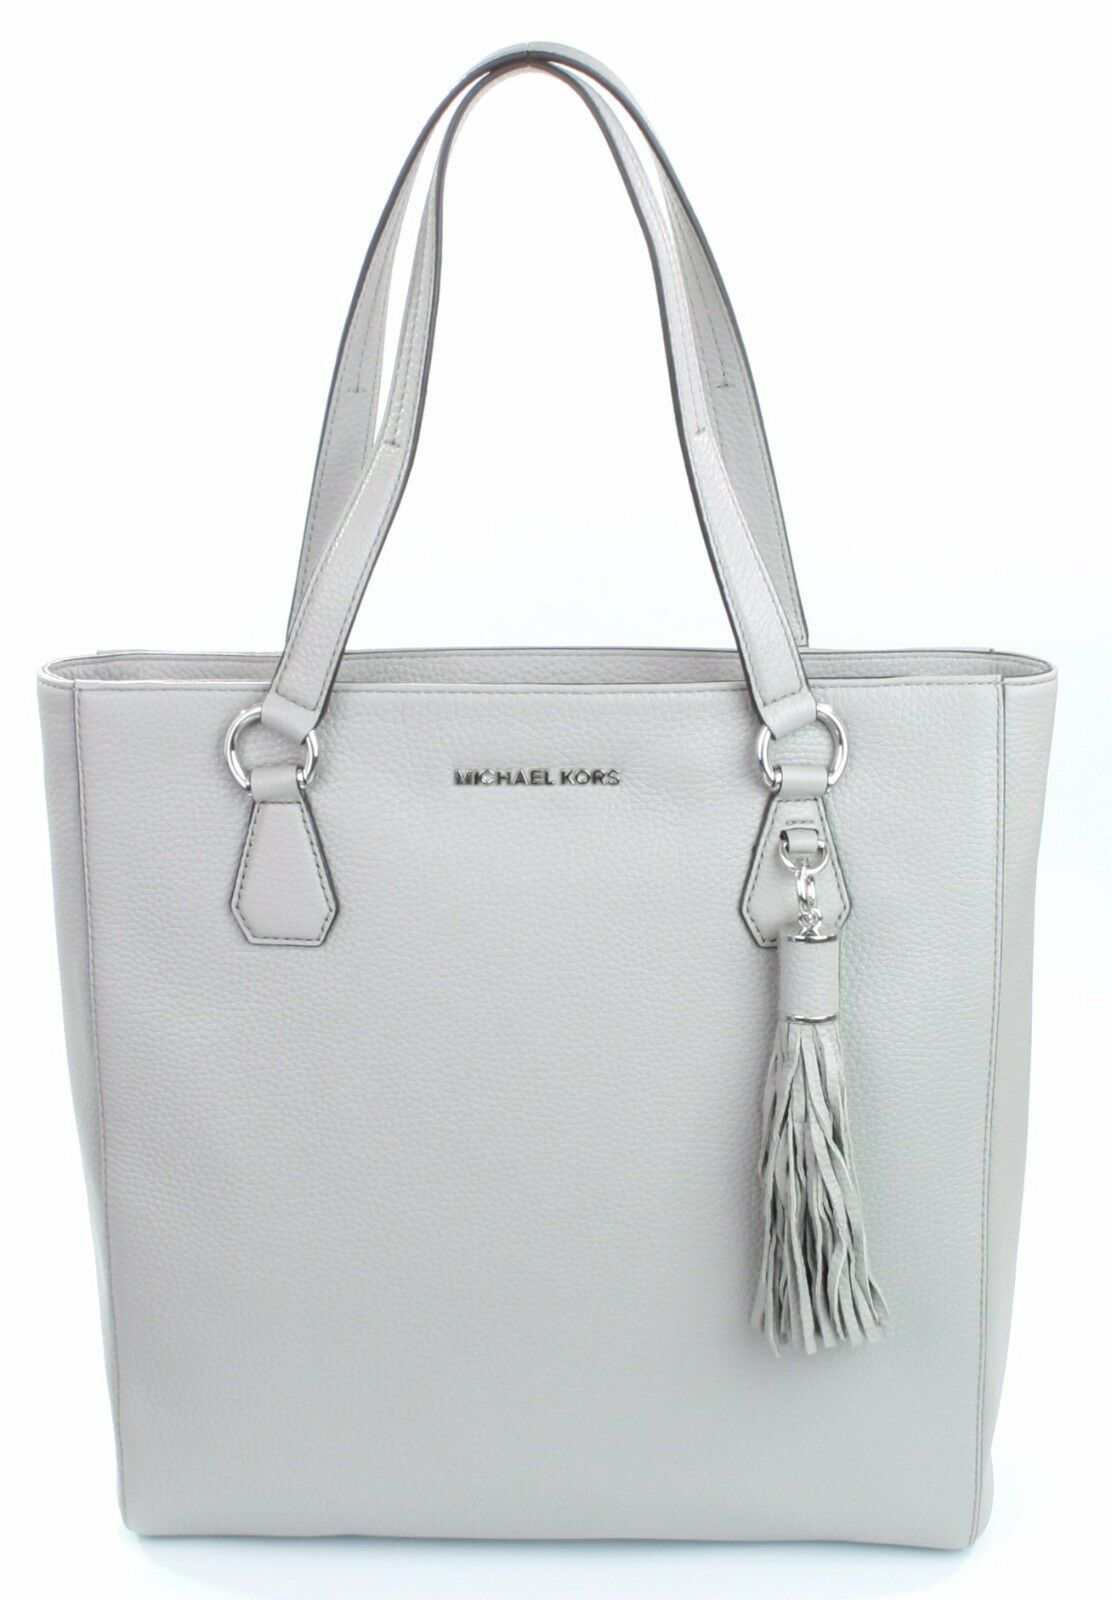 Primary image for Michael Kors Bedford Leather Pearl Grey Shopper Tote Bag Large Handbag RRP £327